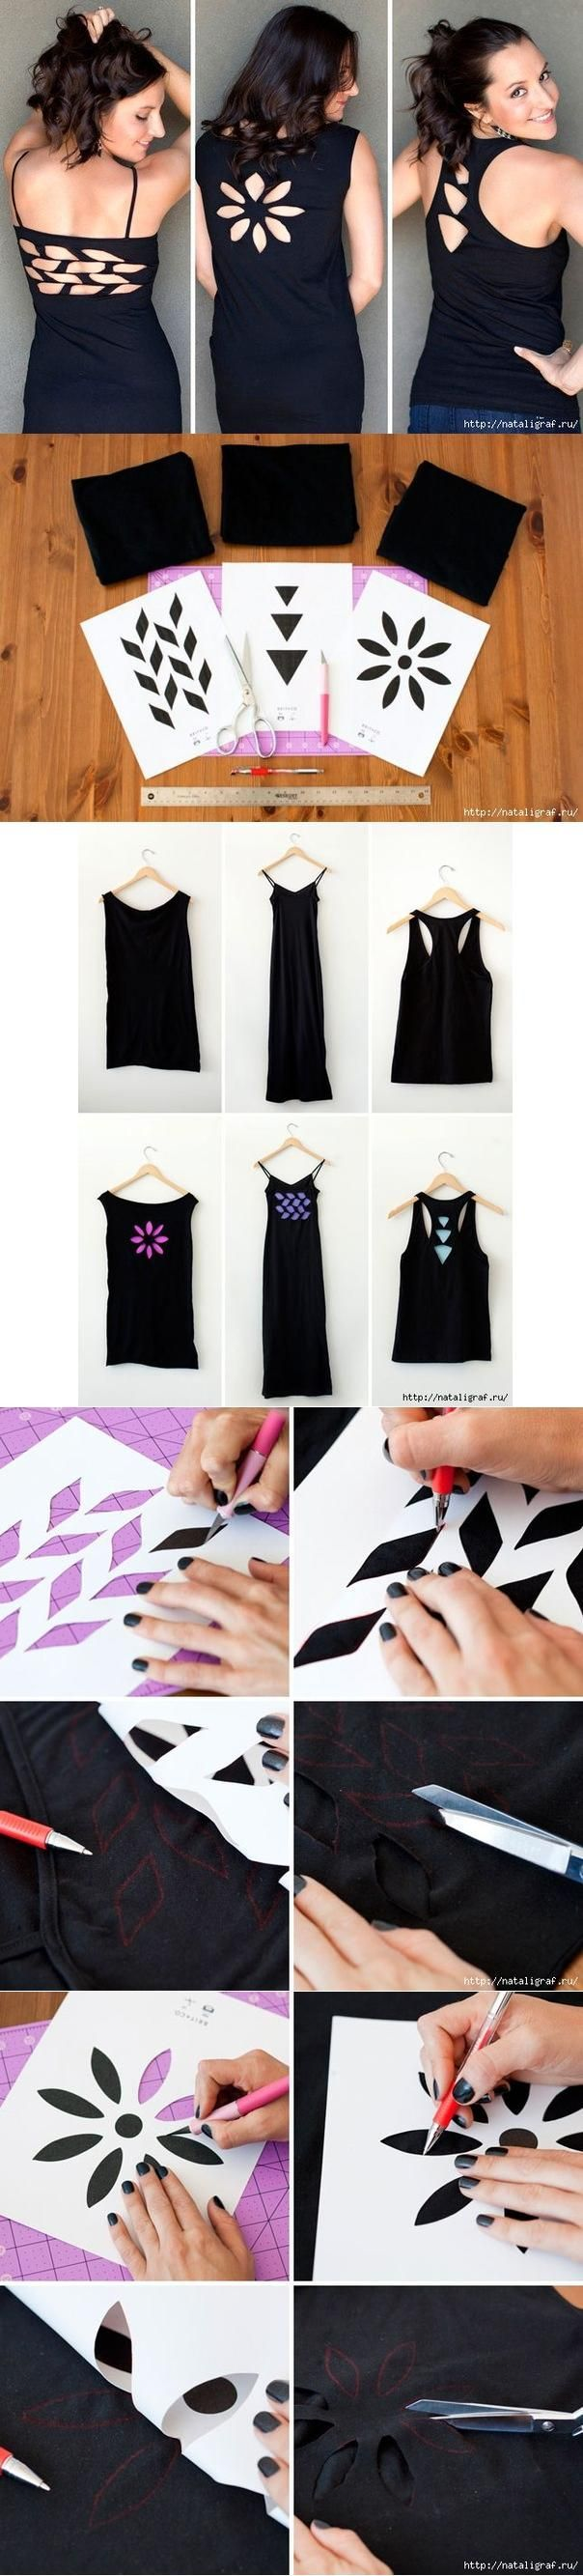 DIY Shirt Cut-outs: